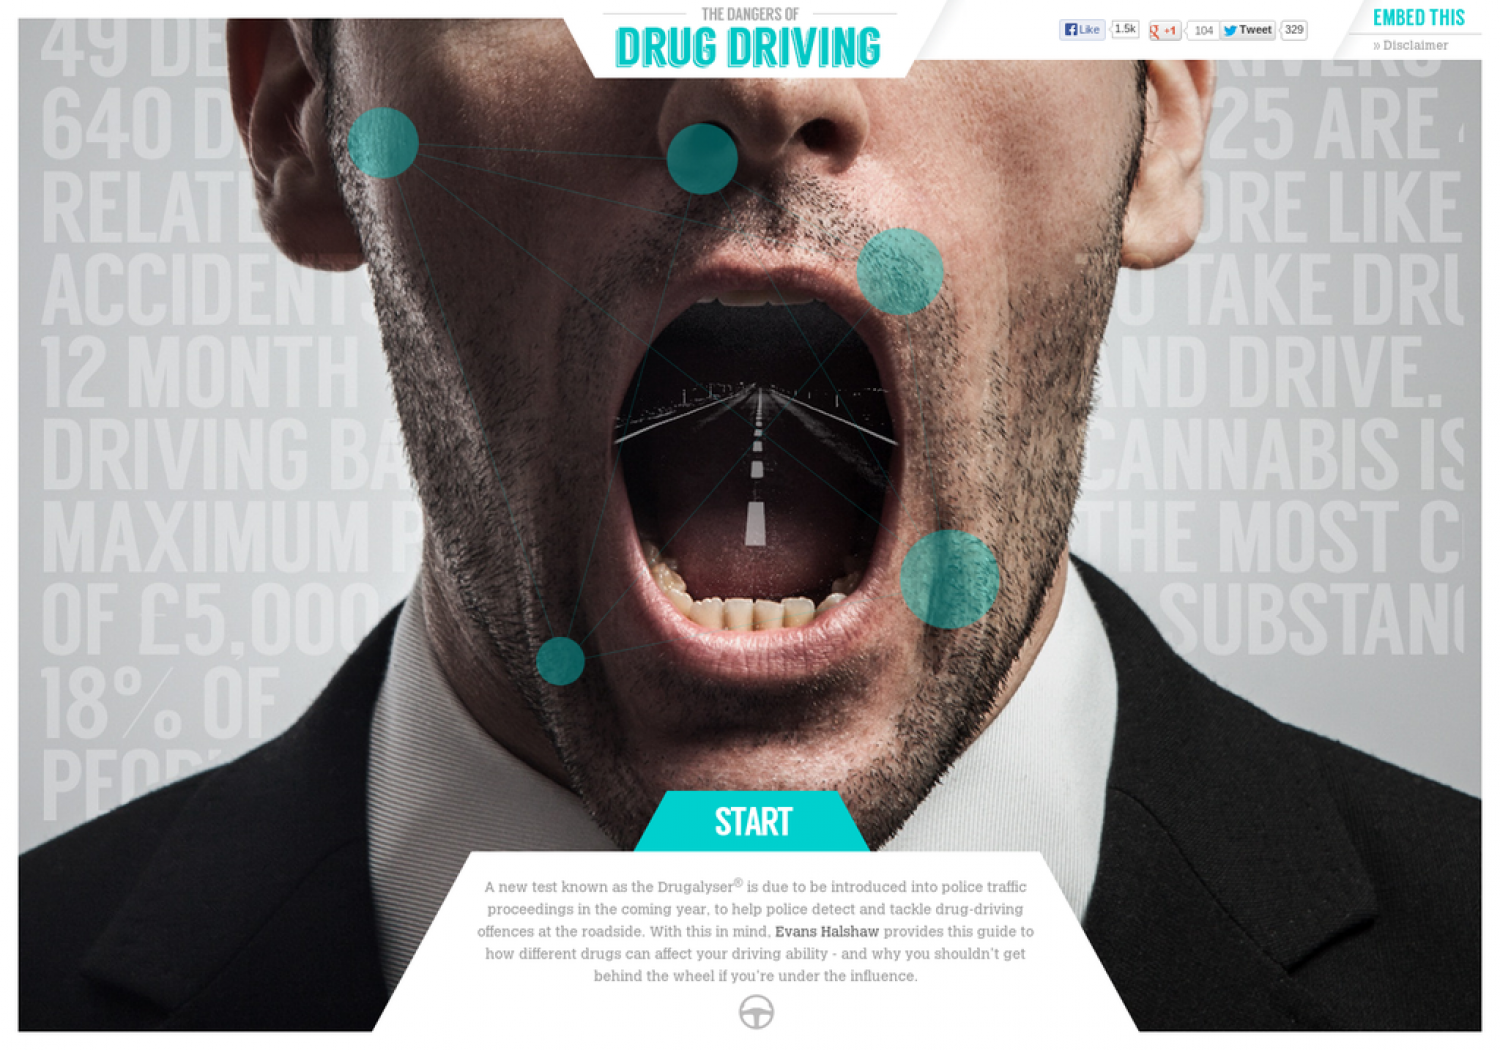 The Dangers of Drug Driving Infographic